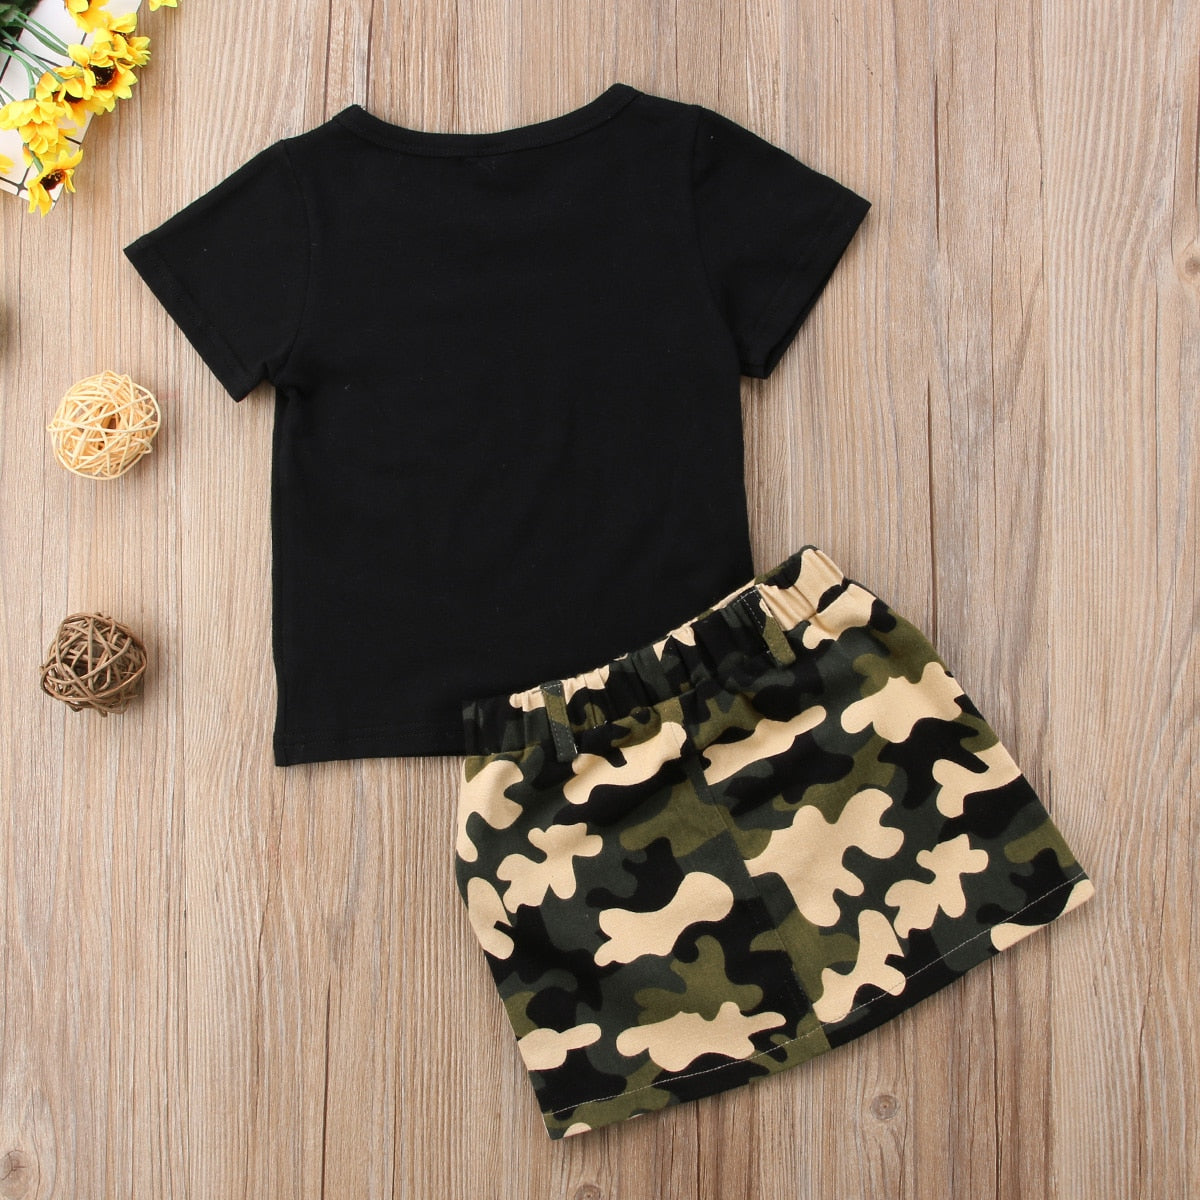 Toddler Kids Baby T-shirt Tops Camo Skirt  Summer Summer Set